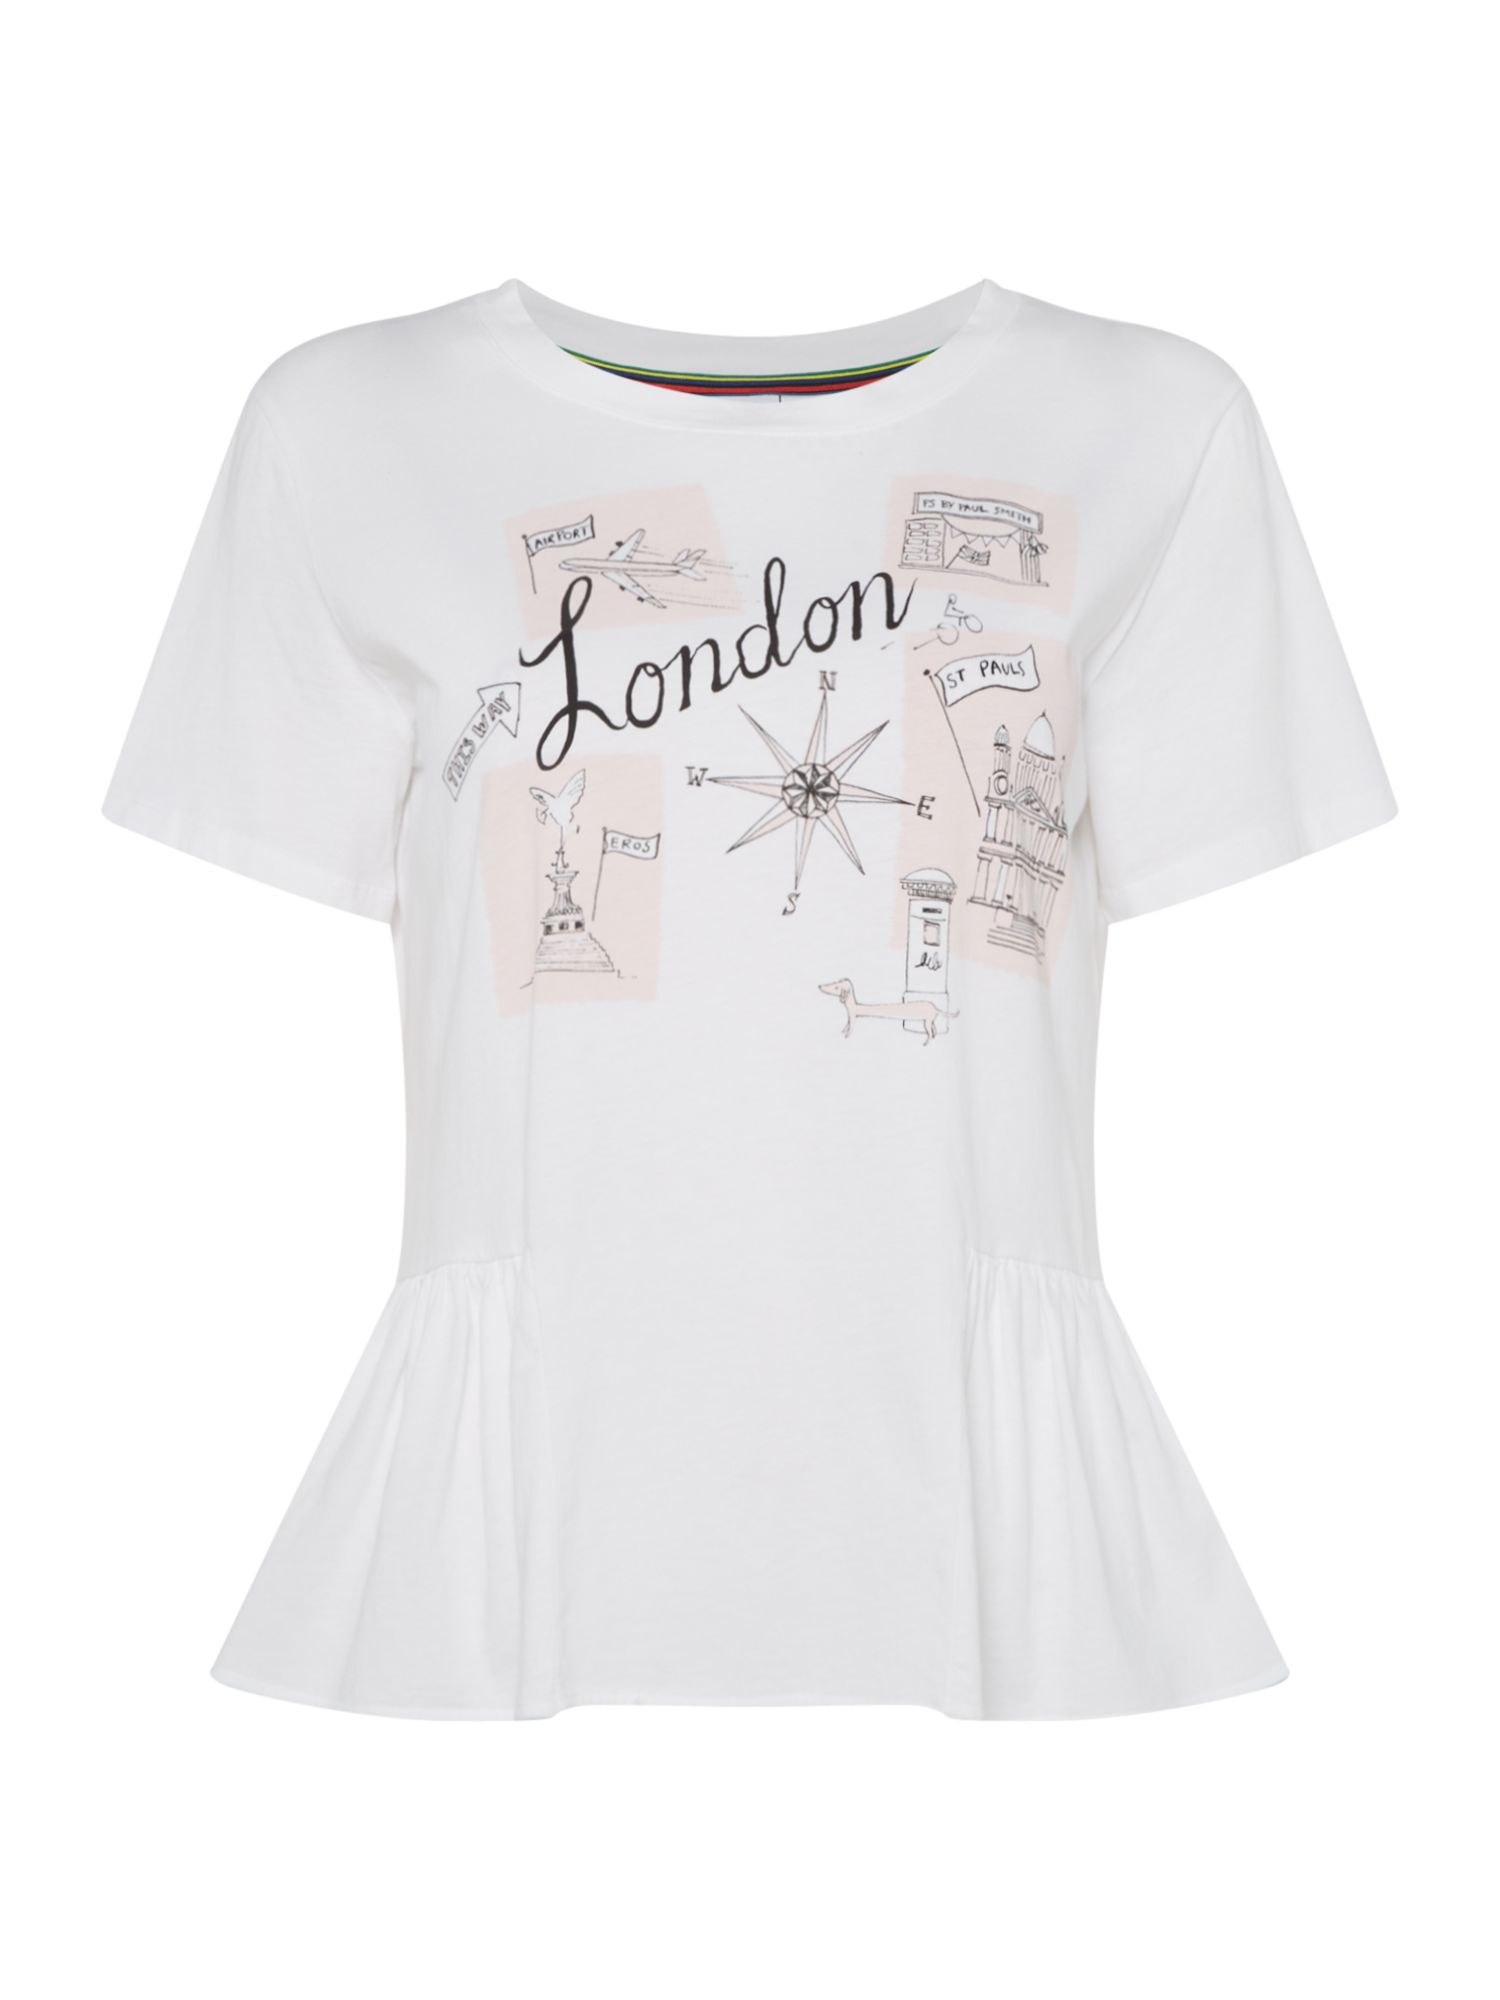 PS By Paul Smith London motif tee, White